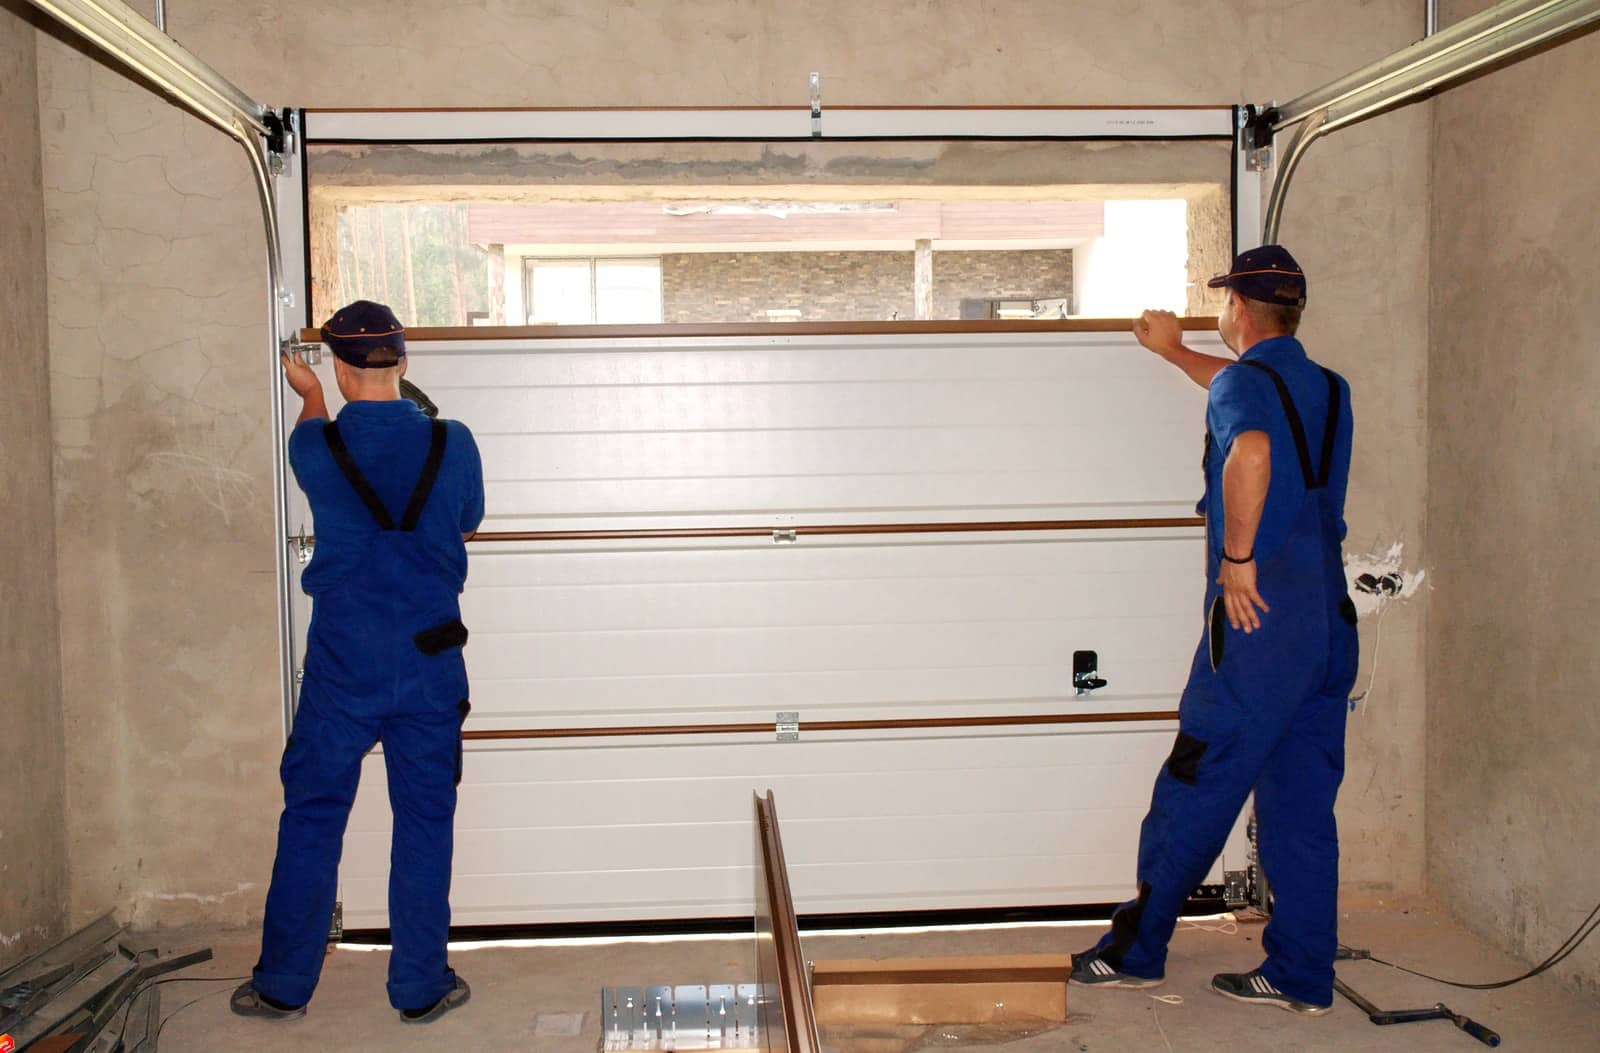 Garage Door Repair – Find a Company That Offers a Warranty